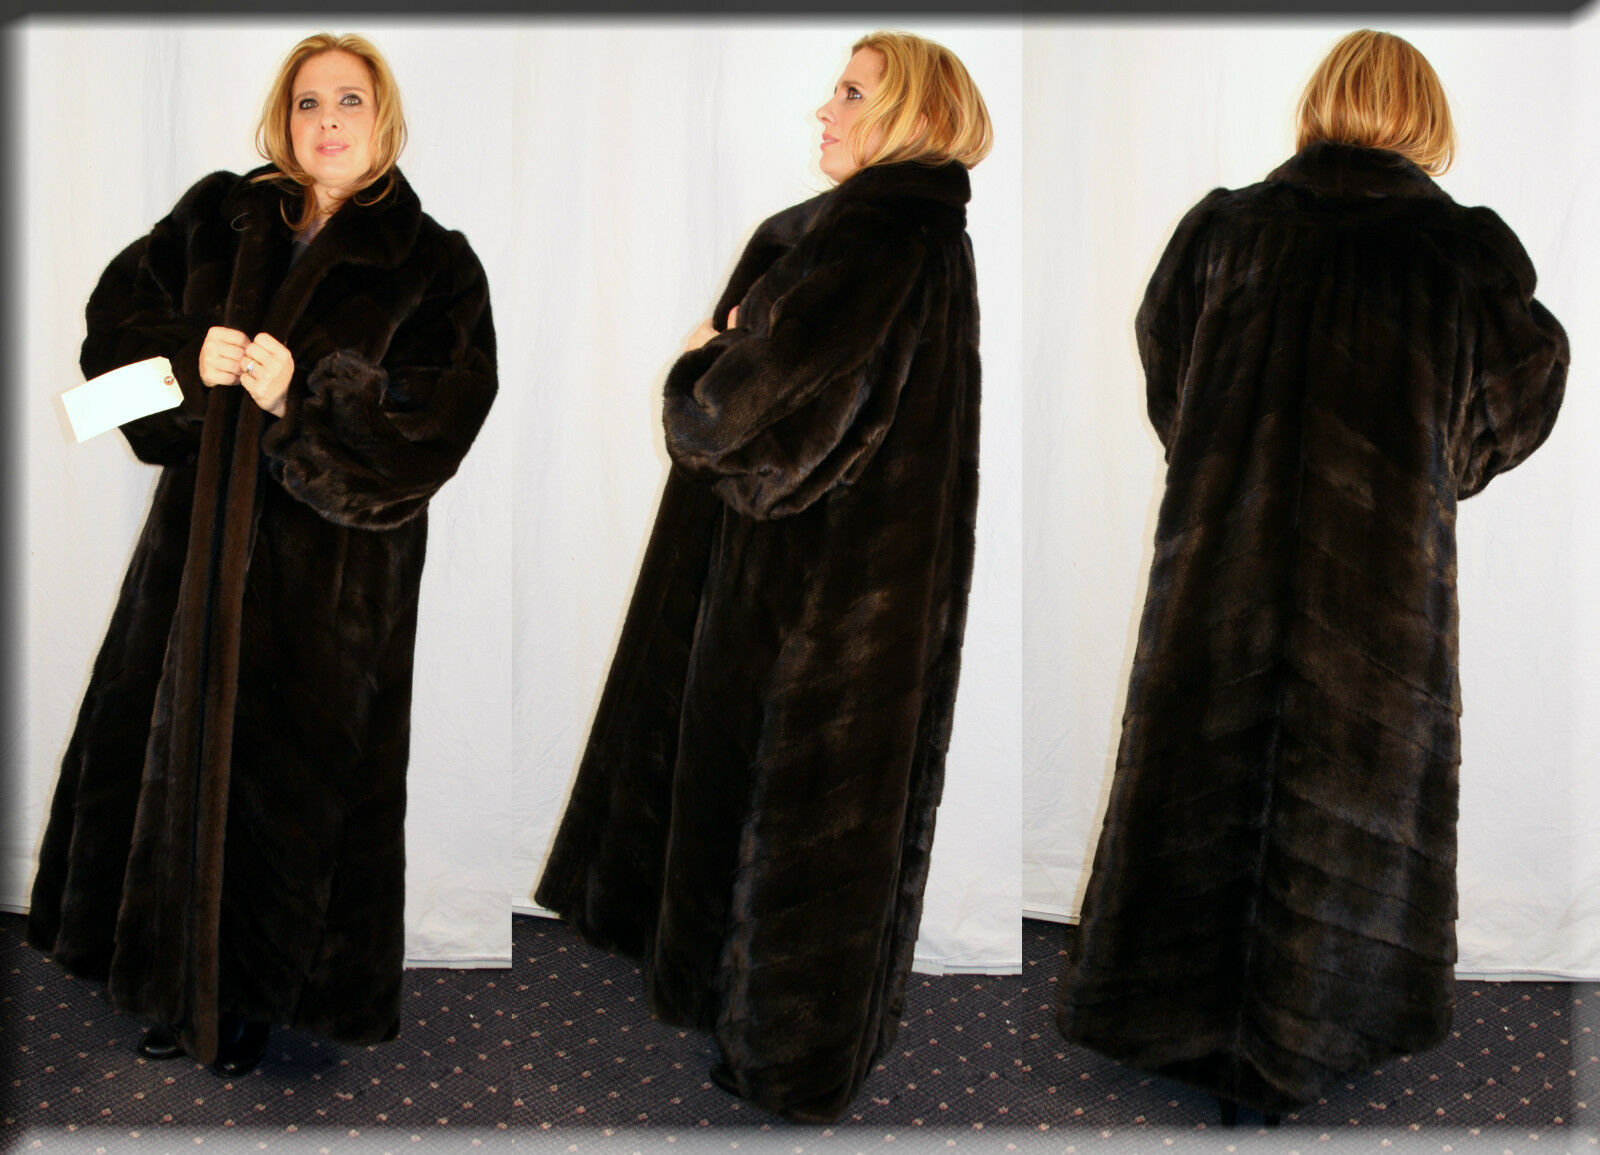 New Directional Ranch Ranch Ranch Mink Fur Coat - Size 2 Extra Large 18 20 2XL - Efurs4less 63b582